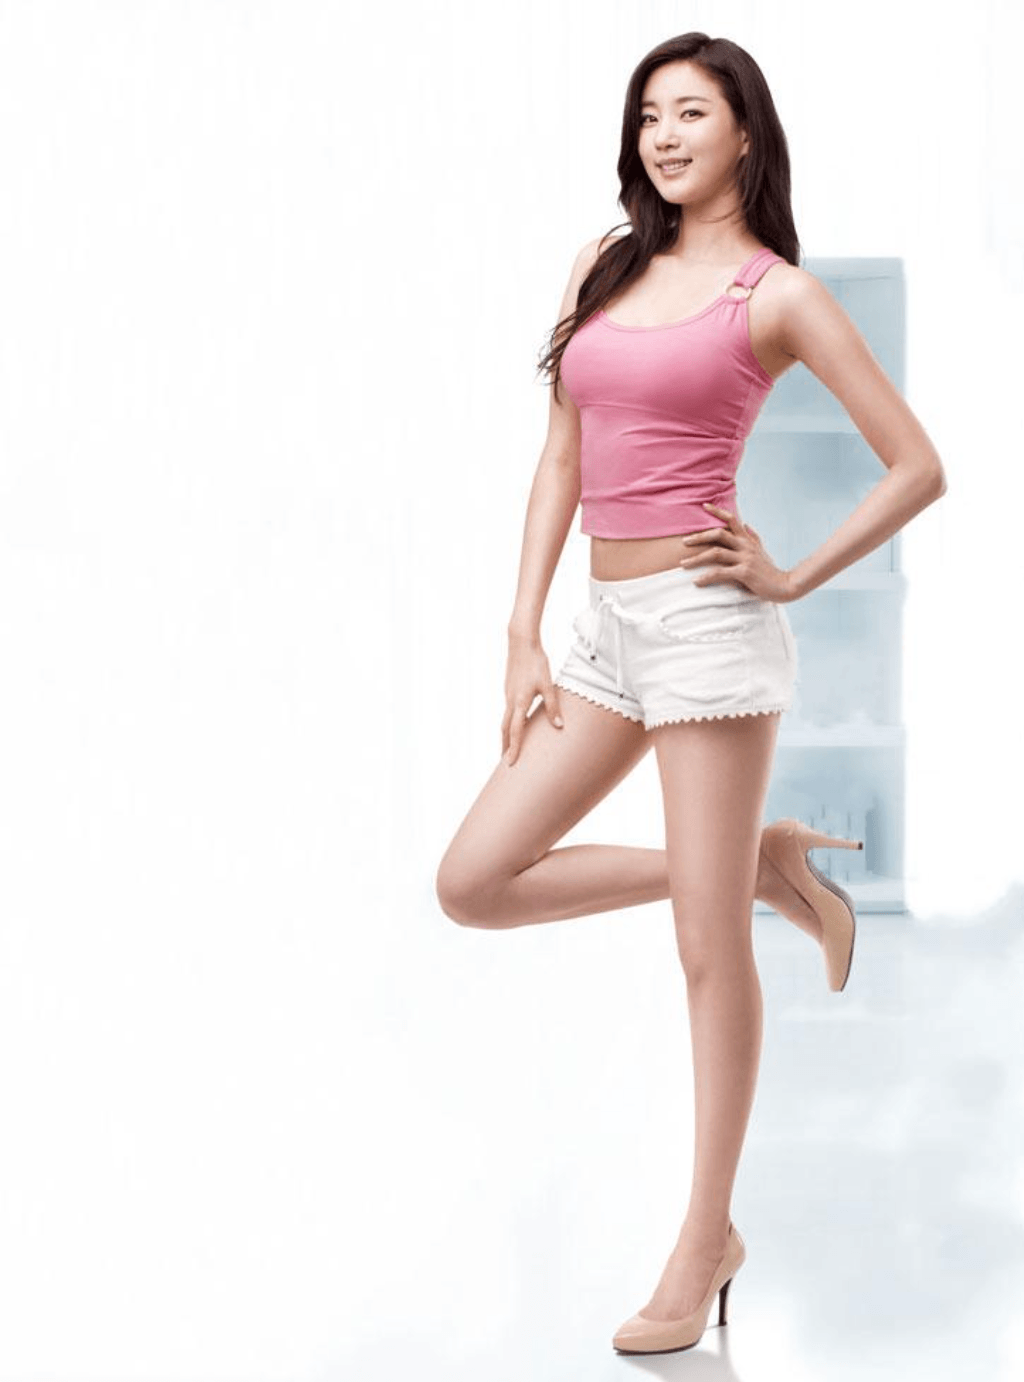 Actress Kim Sarang showing off her slim body in sexy white shorts and a pink tank top. / Duli